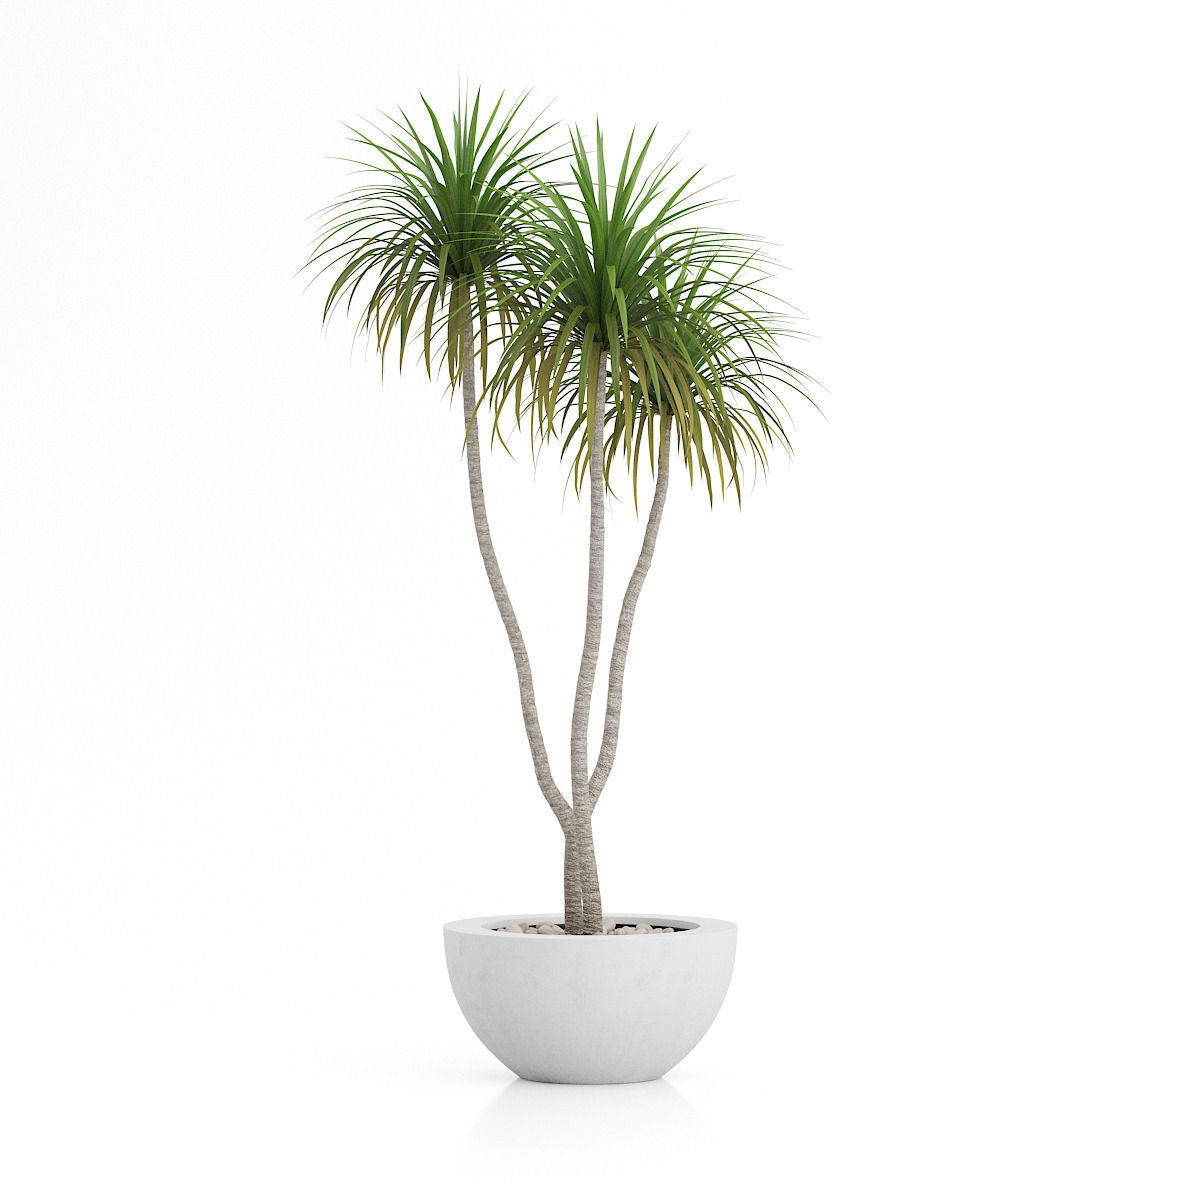 3d Plants Iv Cgaxis Models Volume 60 Vray 3d Model Max